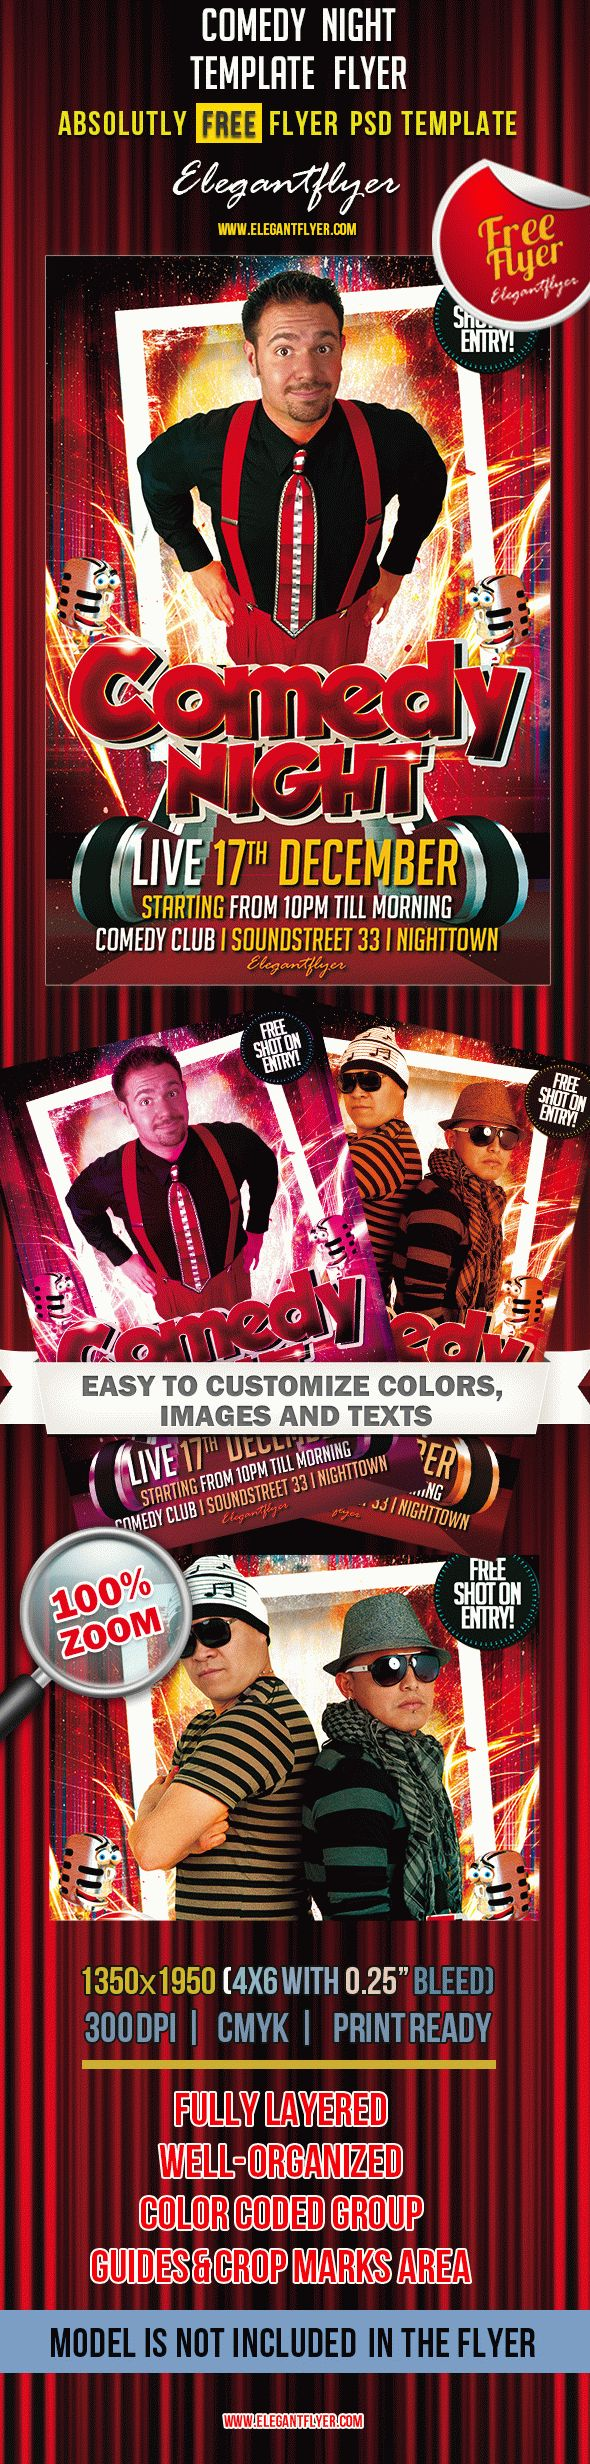 comedy night free club and party flyer psd template. Black Bedroom Furniture Sets. Home Design Ideas